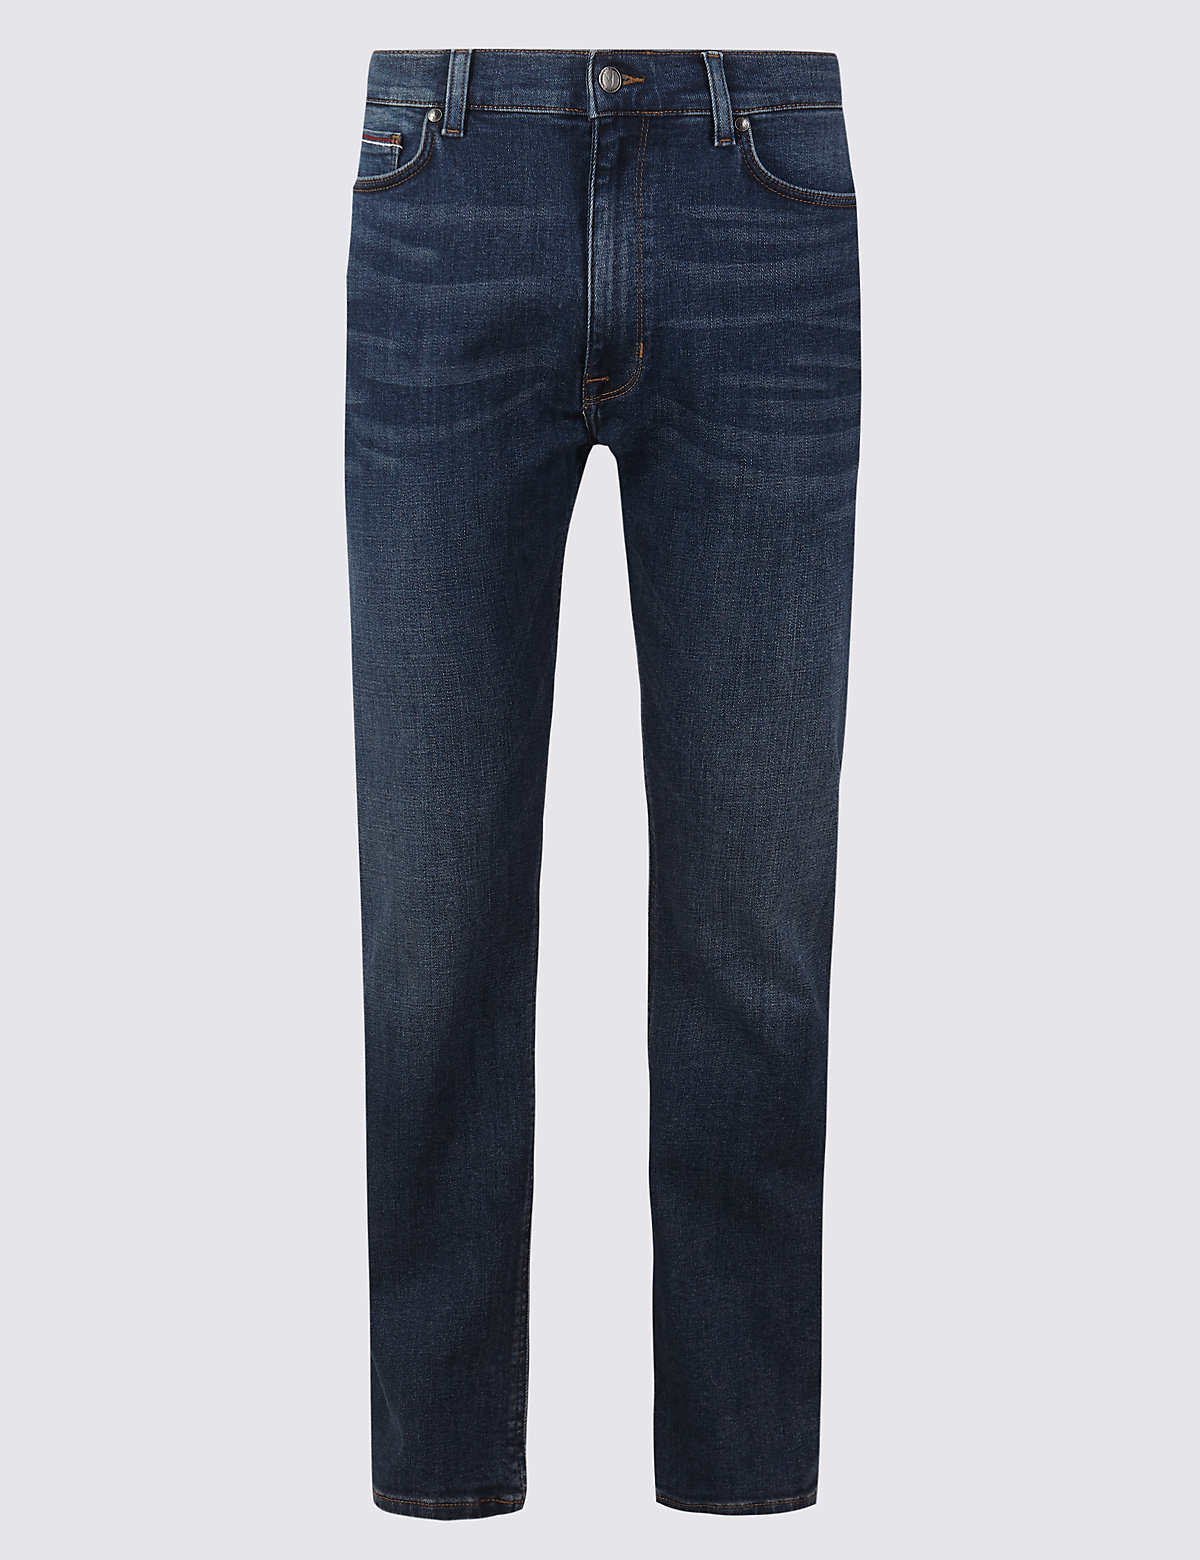 Marks & Spencer Indigo Straight Fit Stretch Jeans